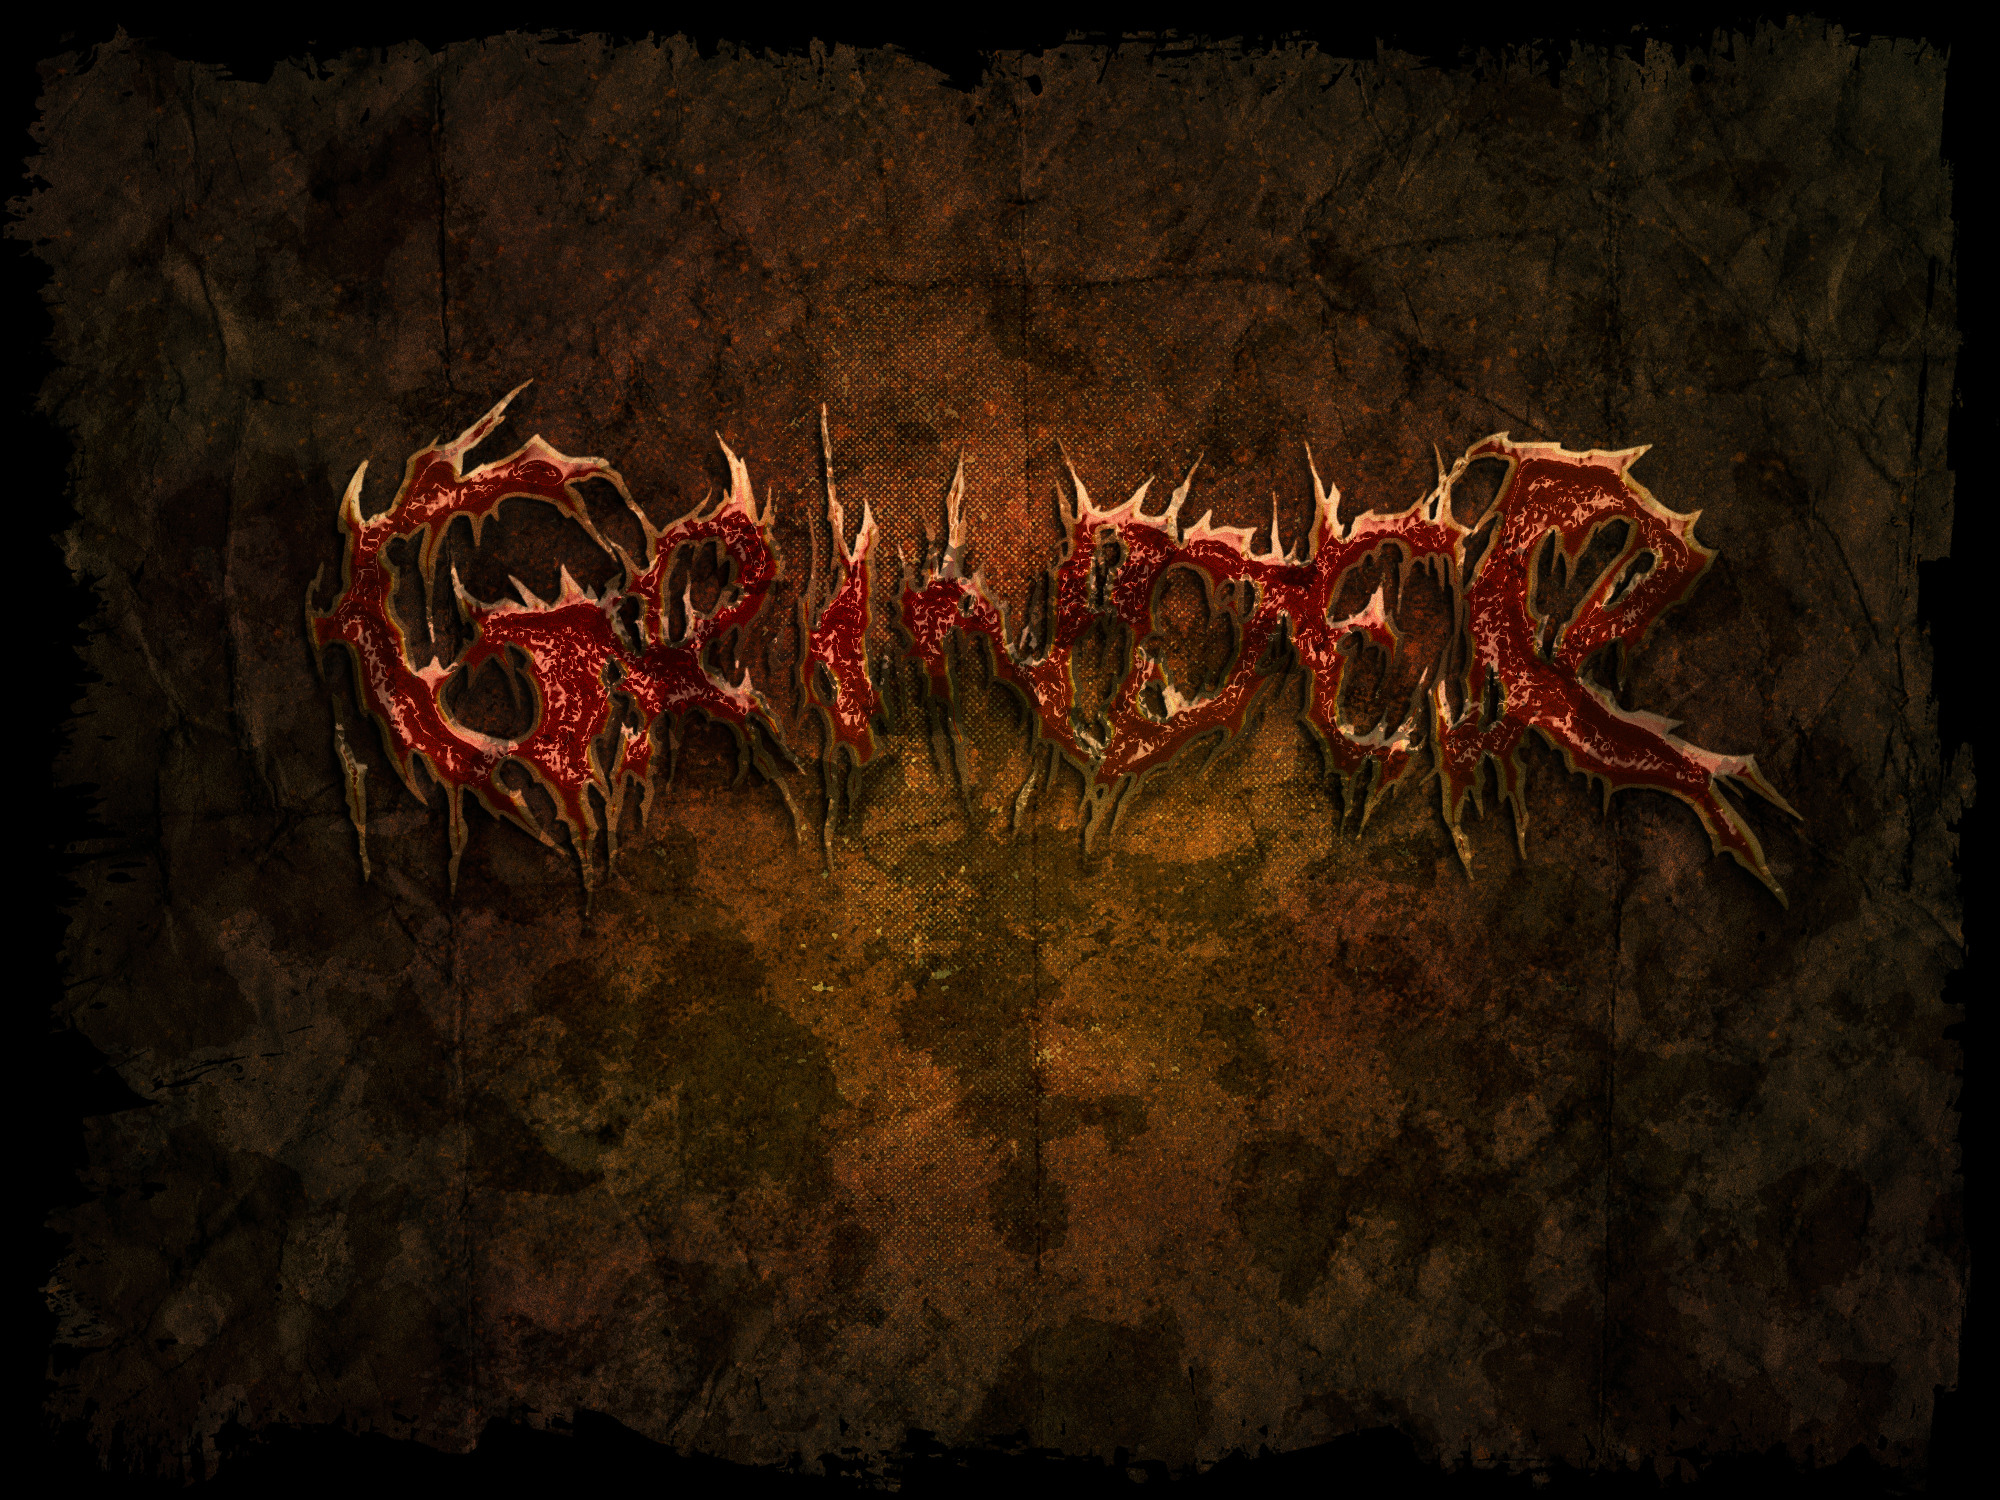 BRUTAL DEATH GRIND CORE BAND LOGO TEXT EFFECTS STYLES Vol 1